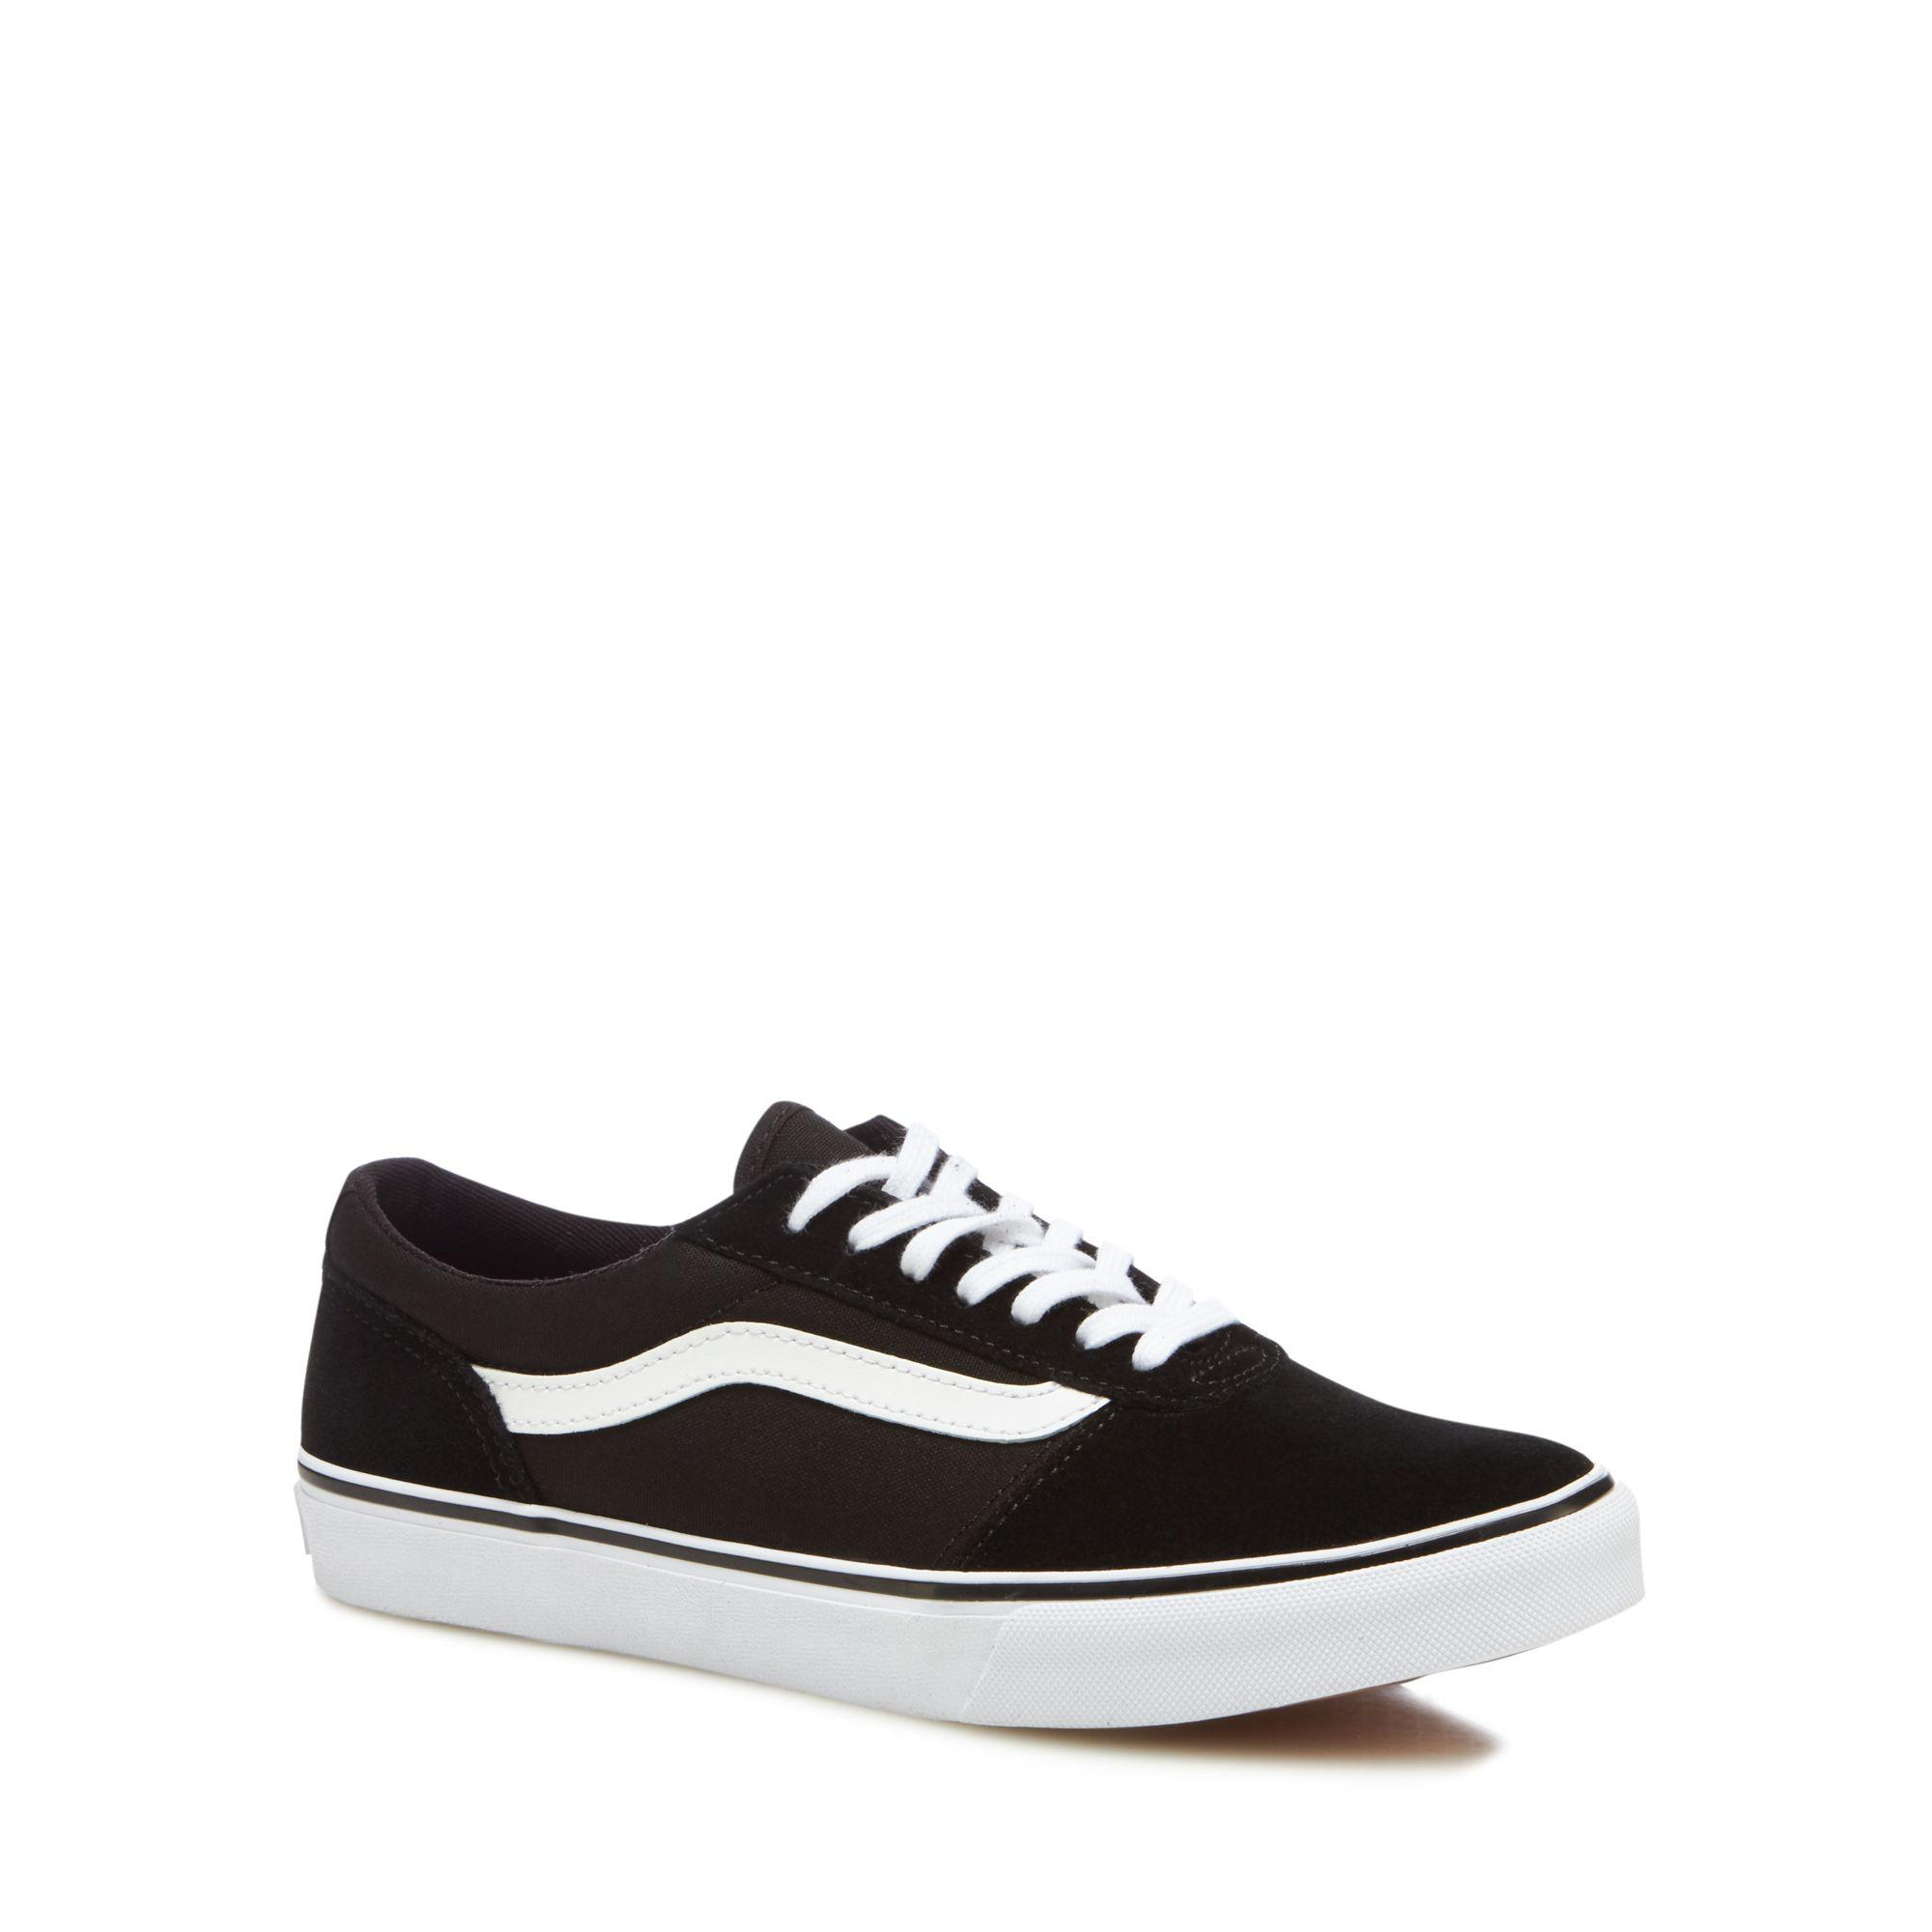 buy cheap websites cheap sale get to buy Black 'Maddie' lace-up trainers buy cheap 100% guaranteed sale online shop cheap finishline zfEKso5r